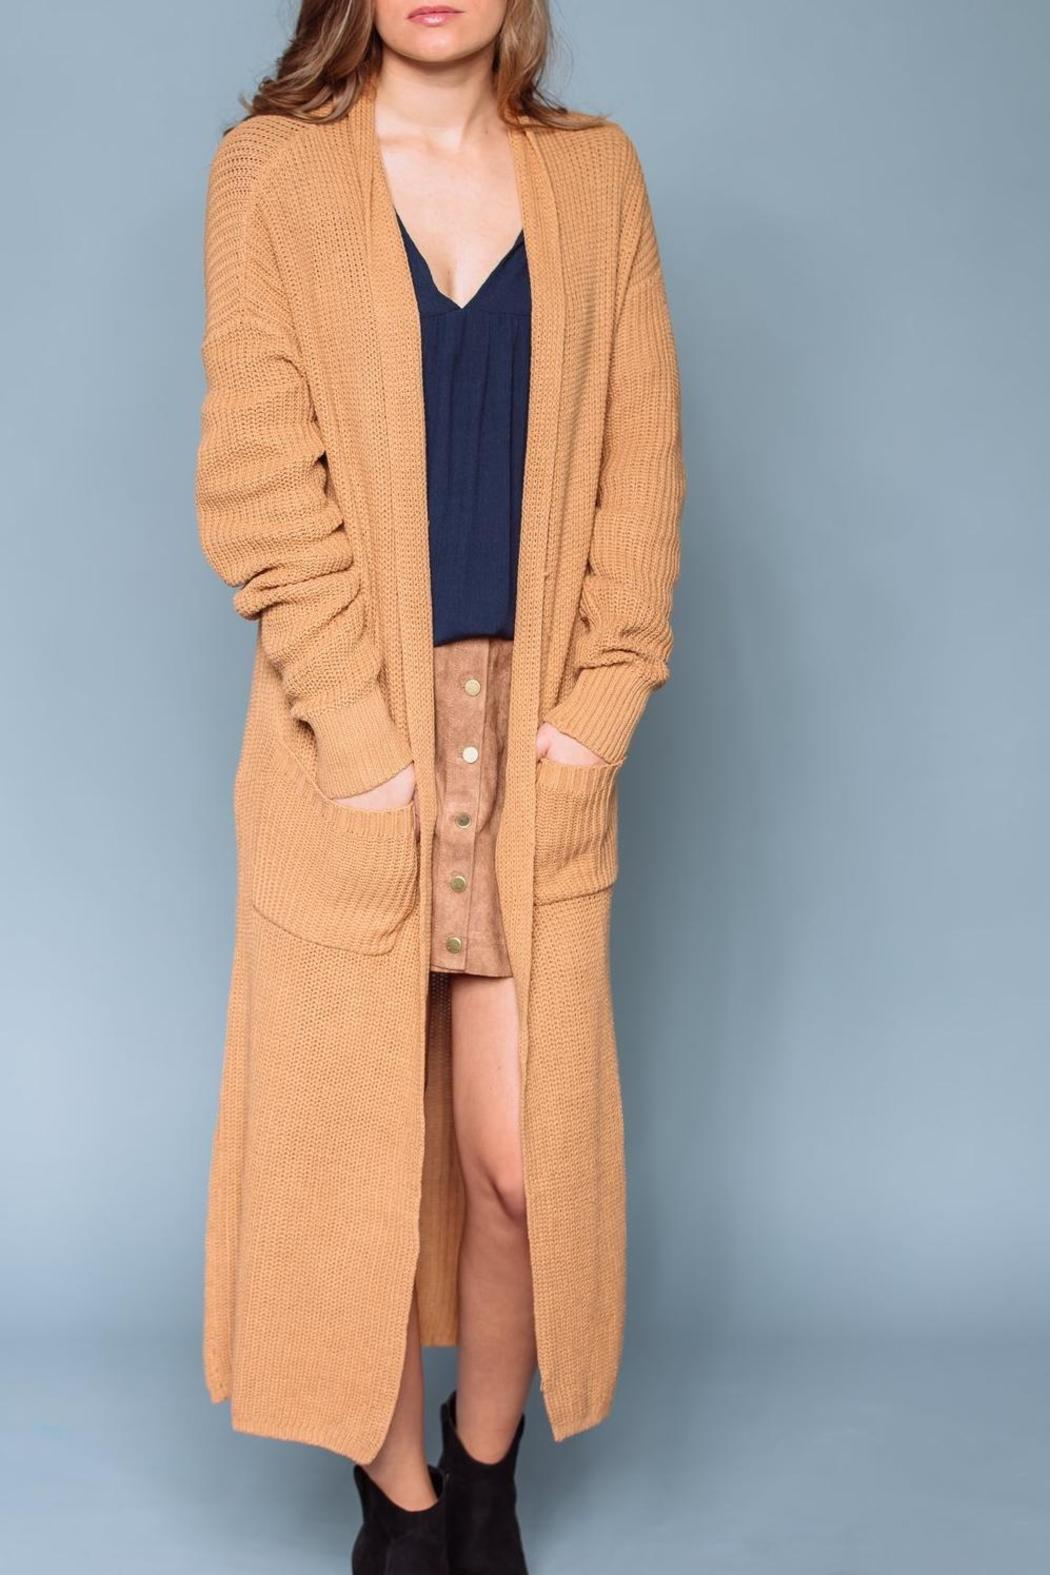 gilt gossamer Long Caramel Cardigan from Oregon by Gilt   Gossamer ...